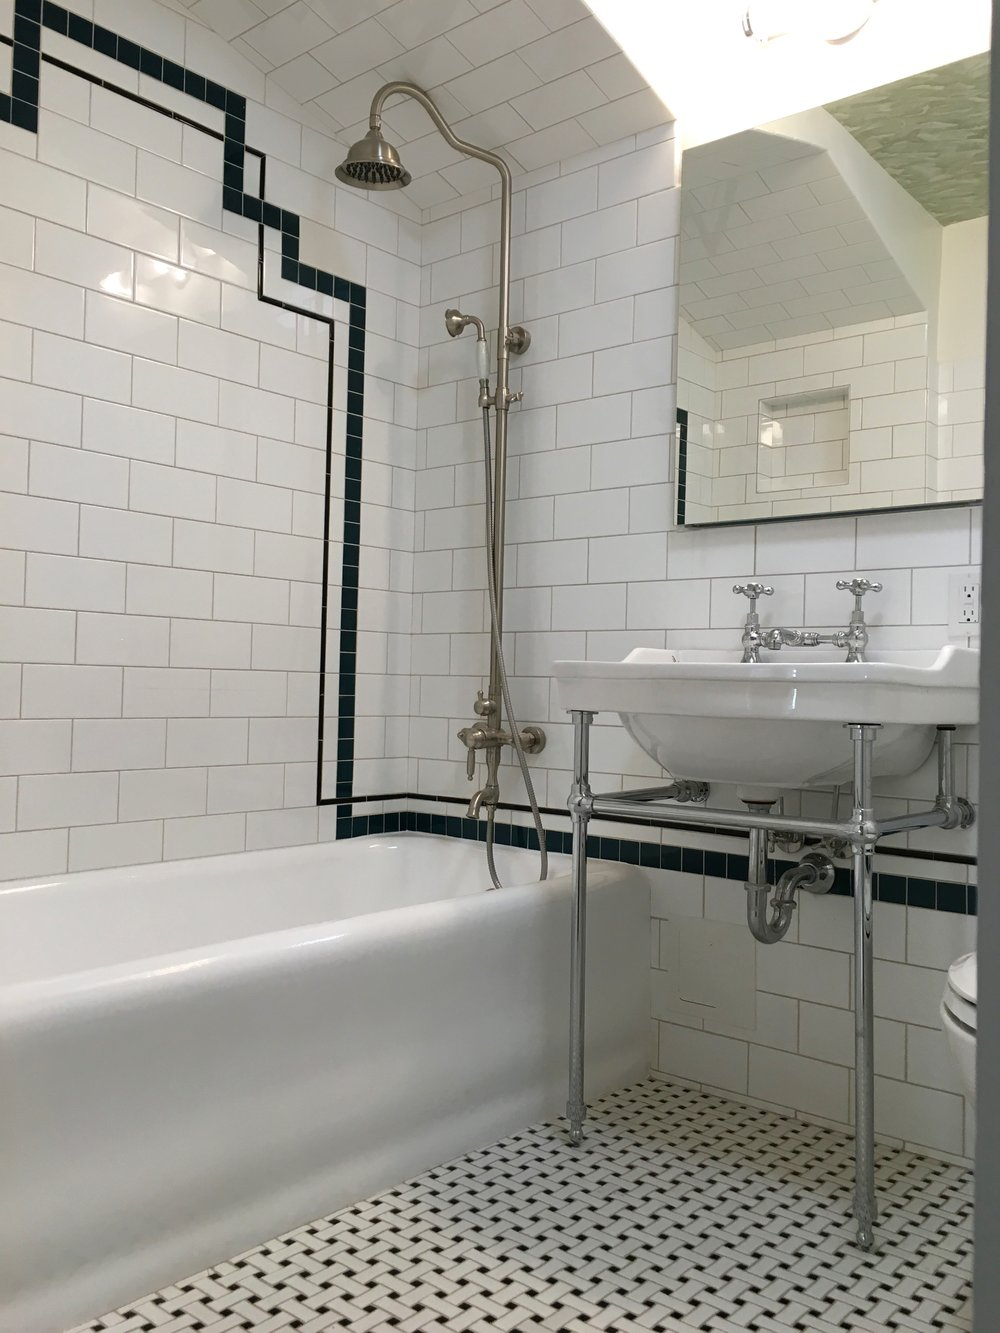 Art Deco Tile Bathroom.jpg